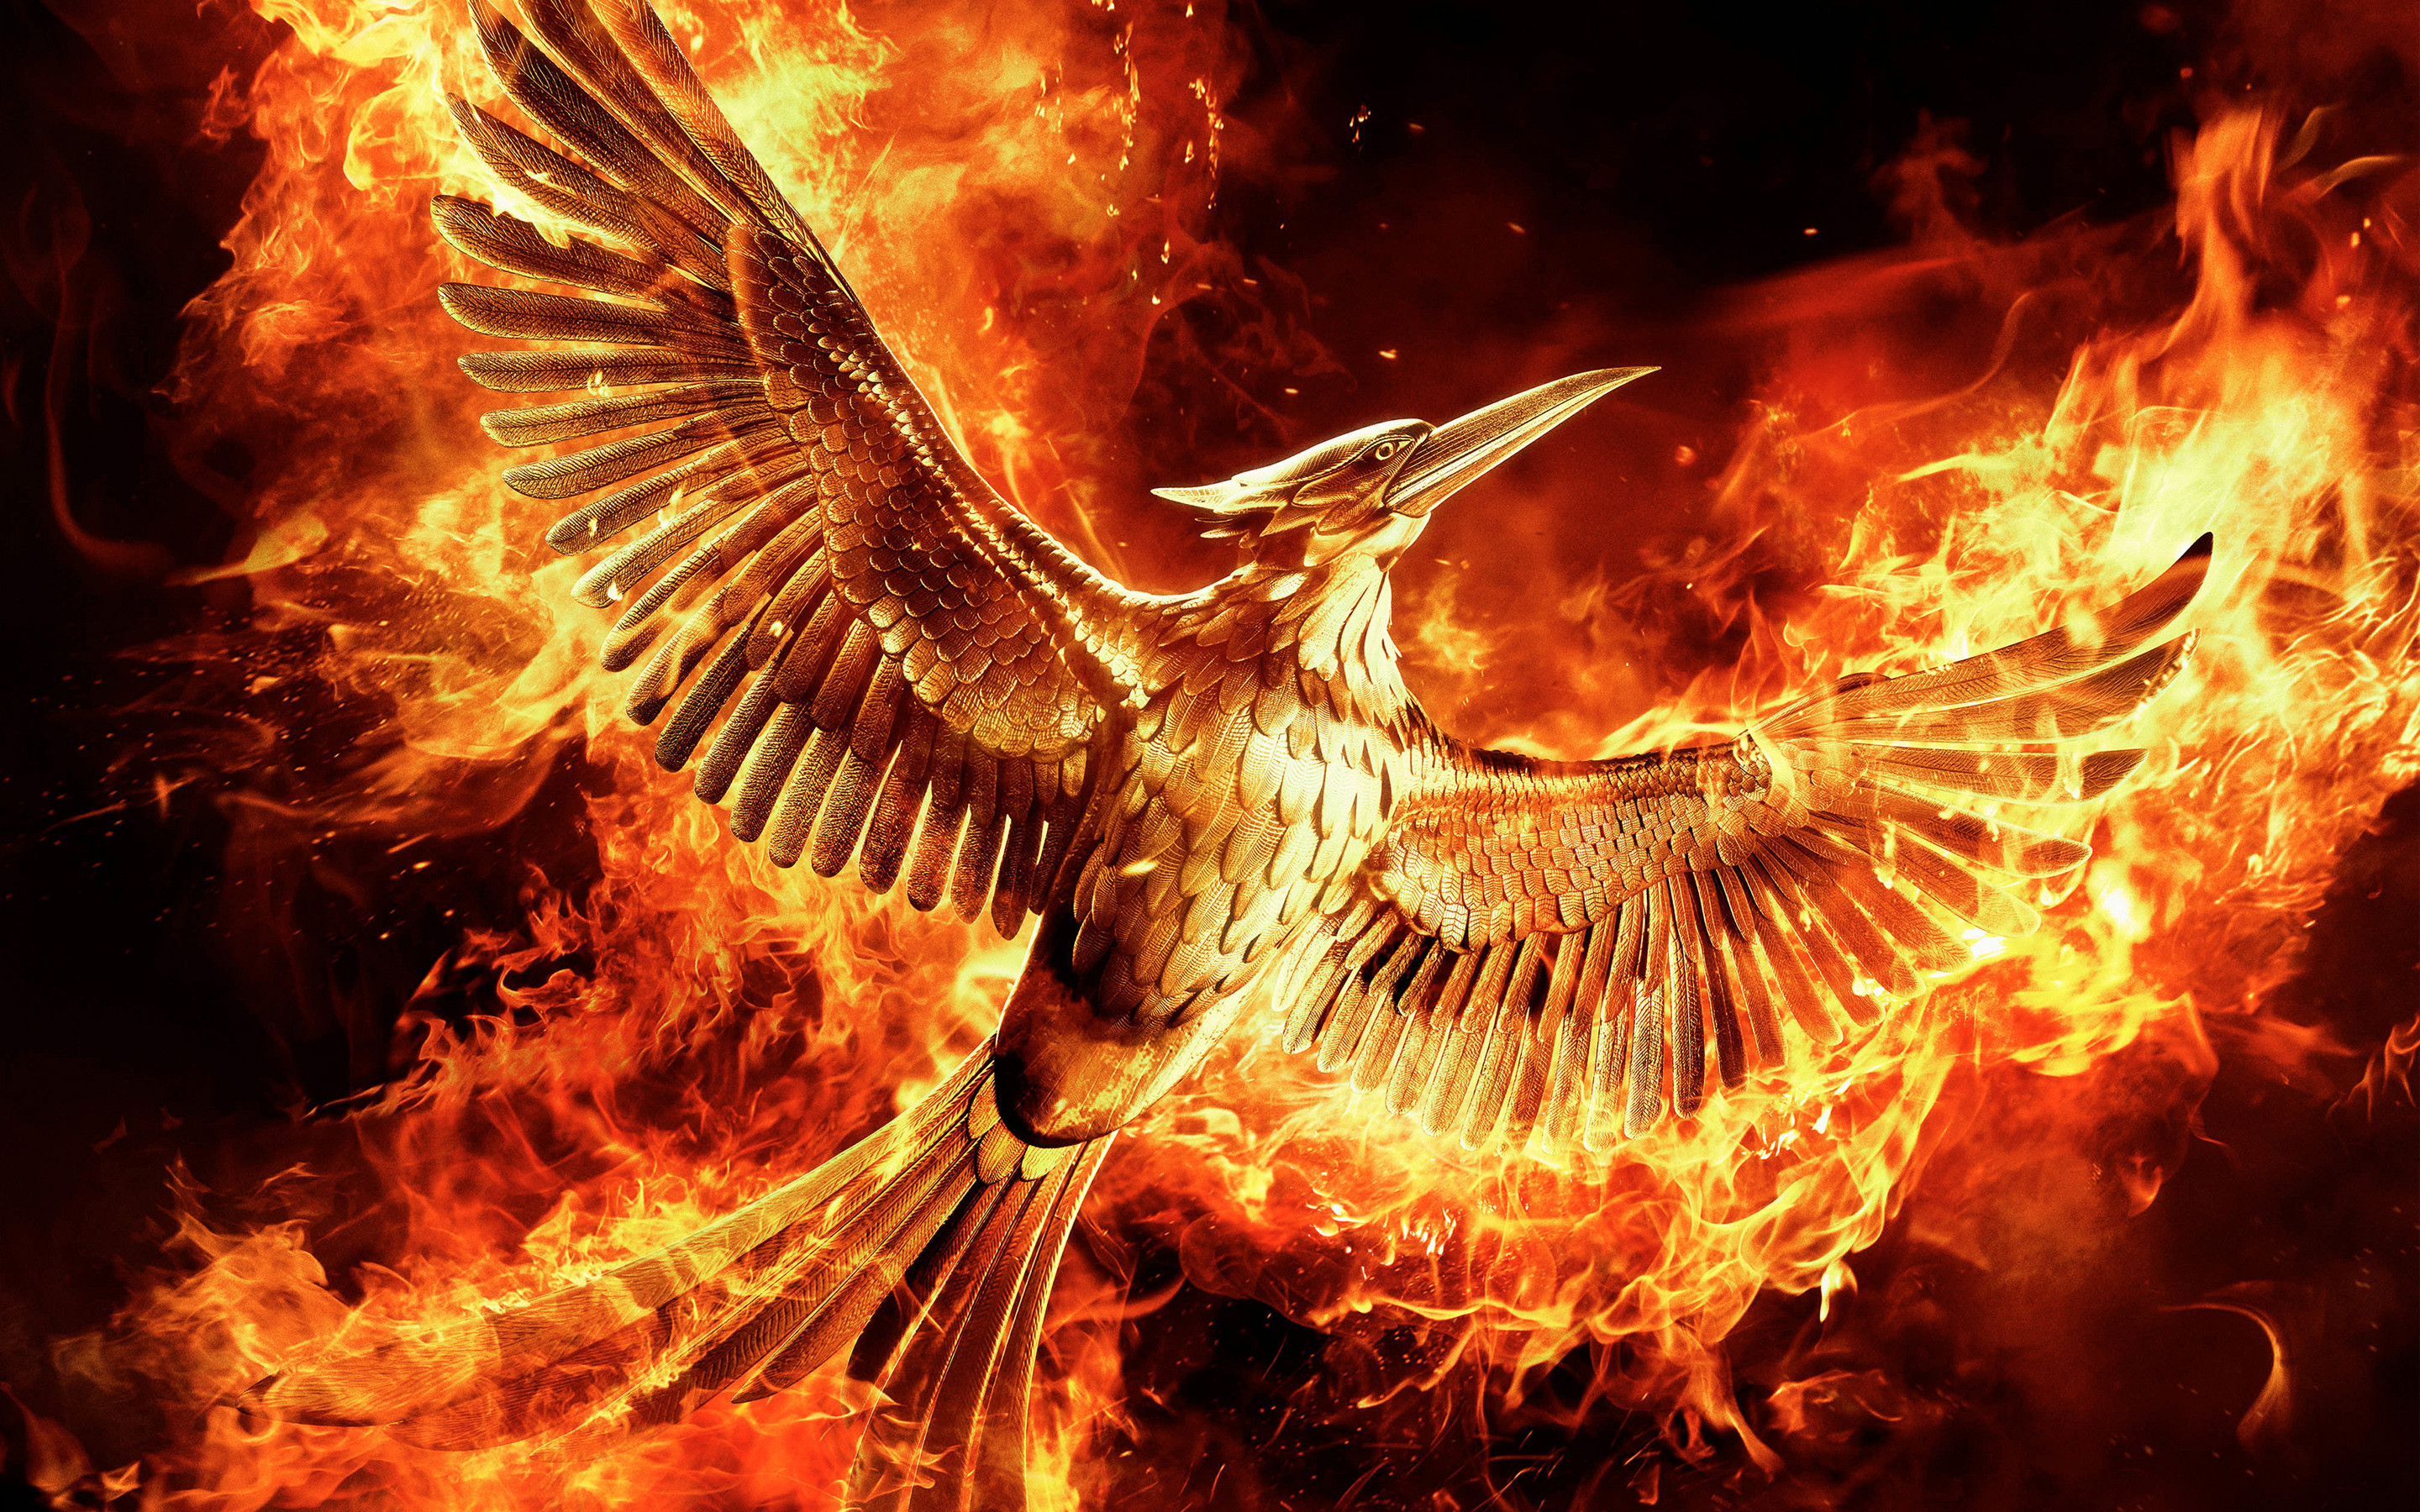 2880x1800 Hunger Games Mockingjay Part 2 Wallpapers - HD Wallpapers 103769